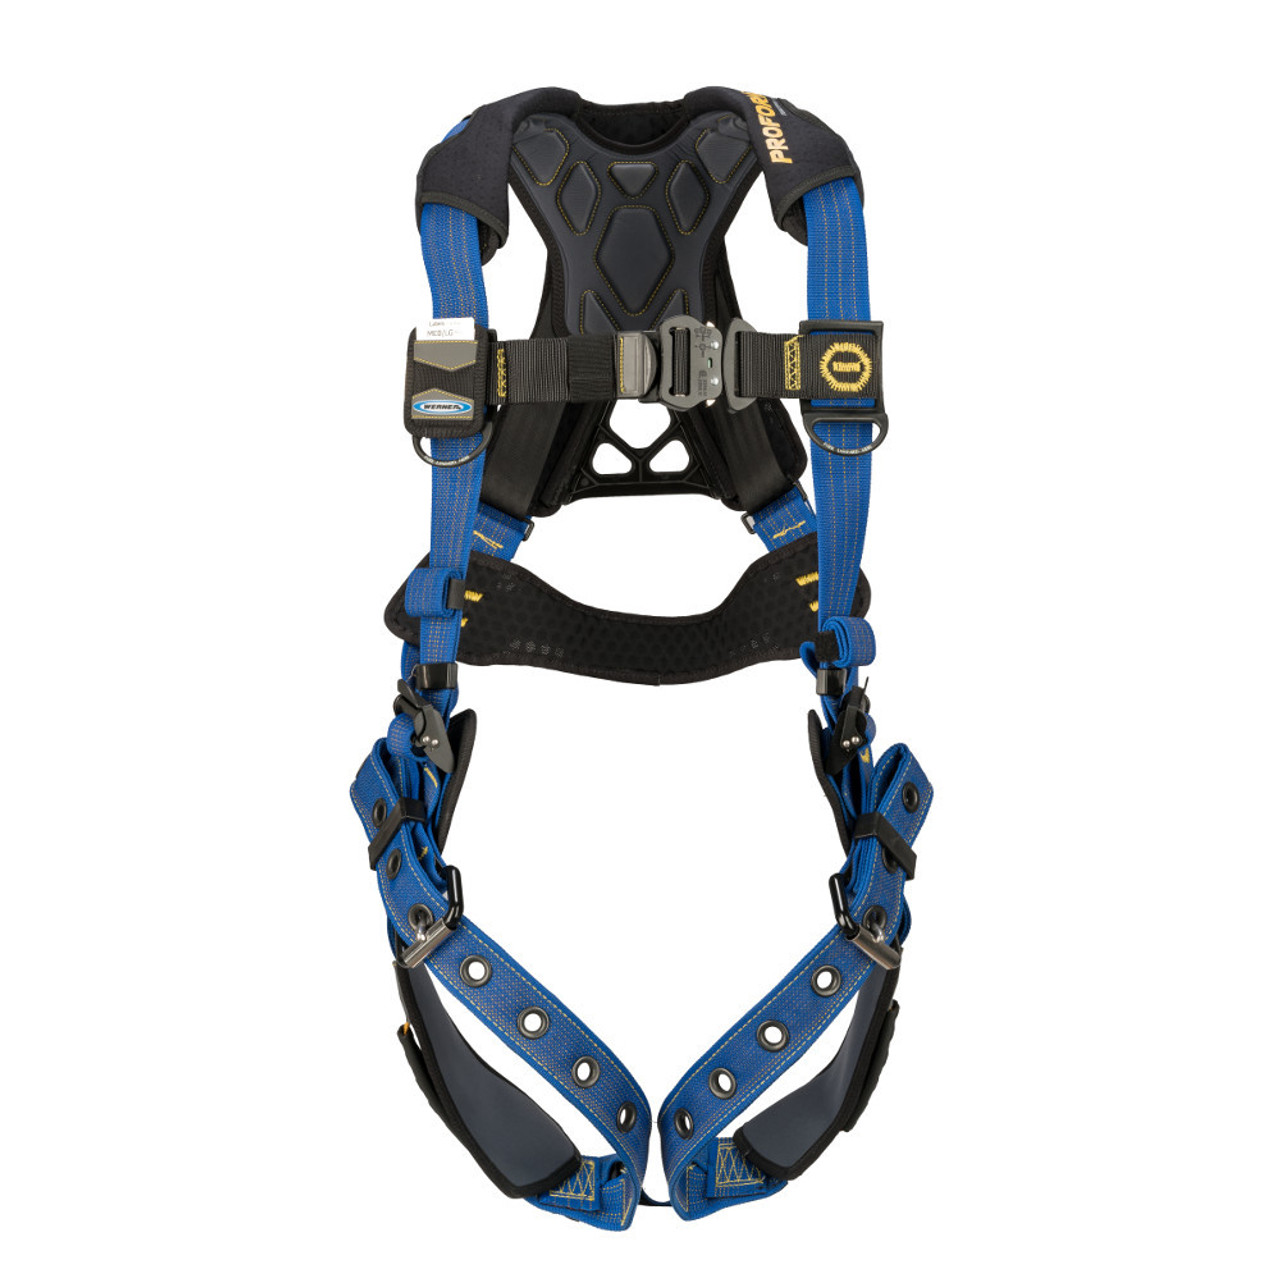 B - Bodywear / Harness